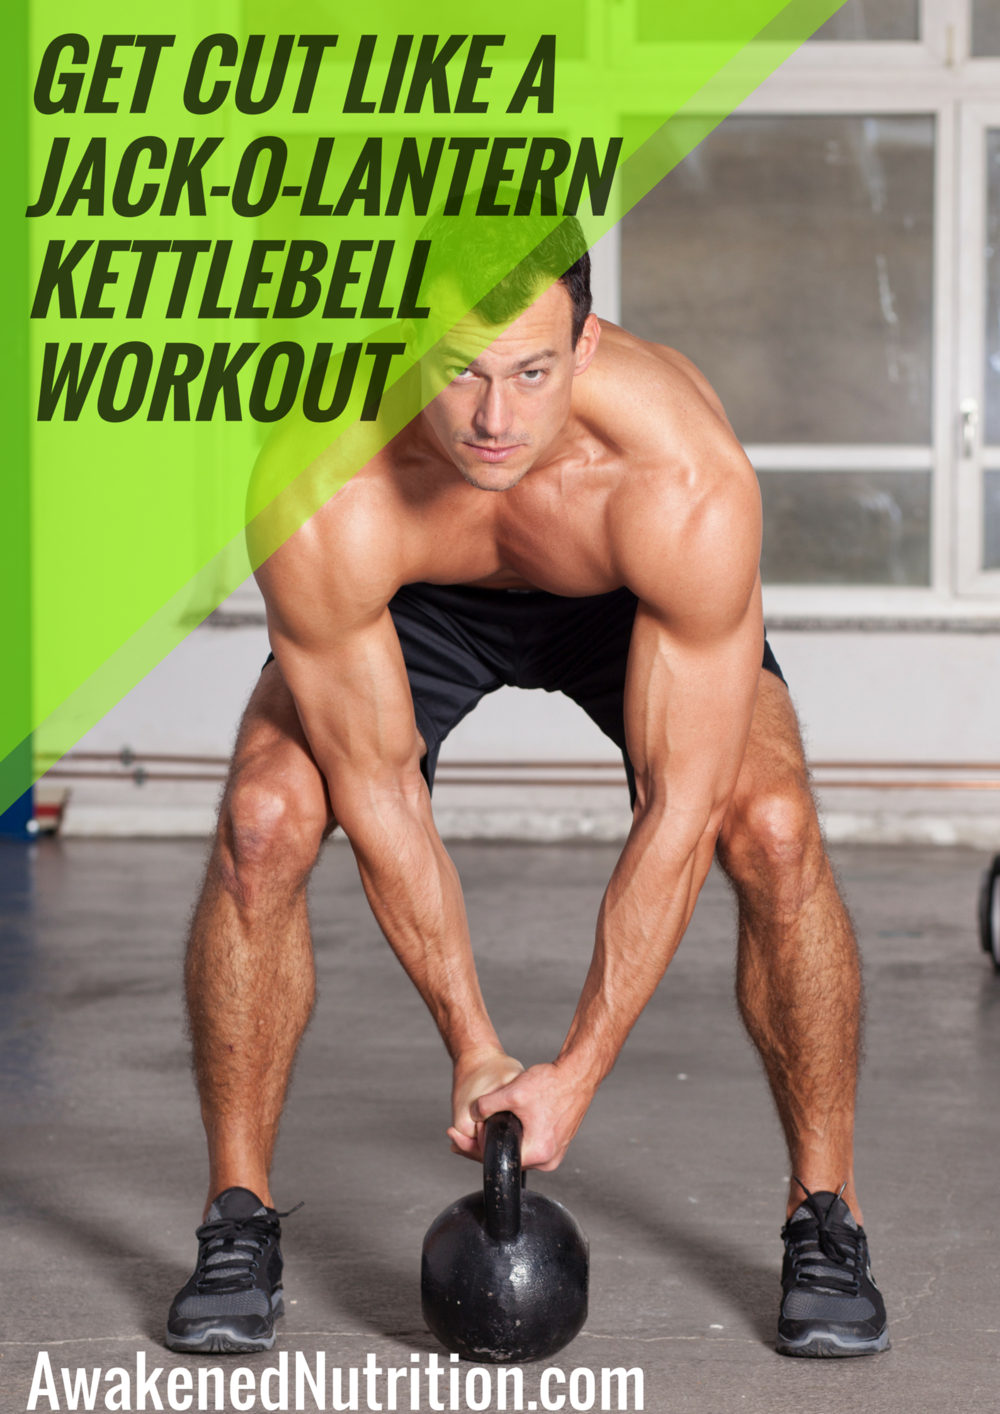 Get cut like a Jack-O-lantern kettlebell workout